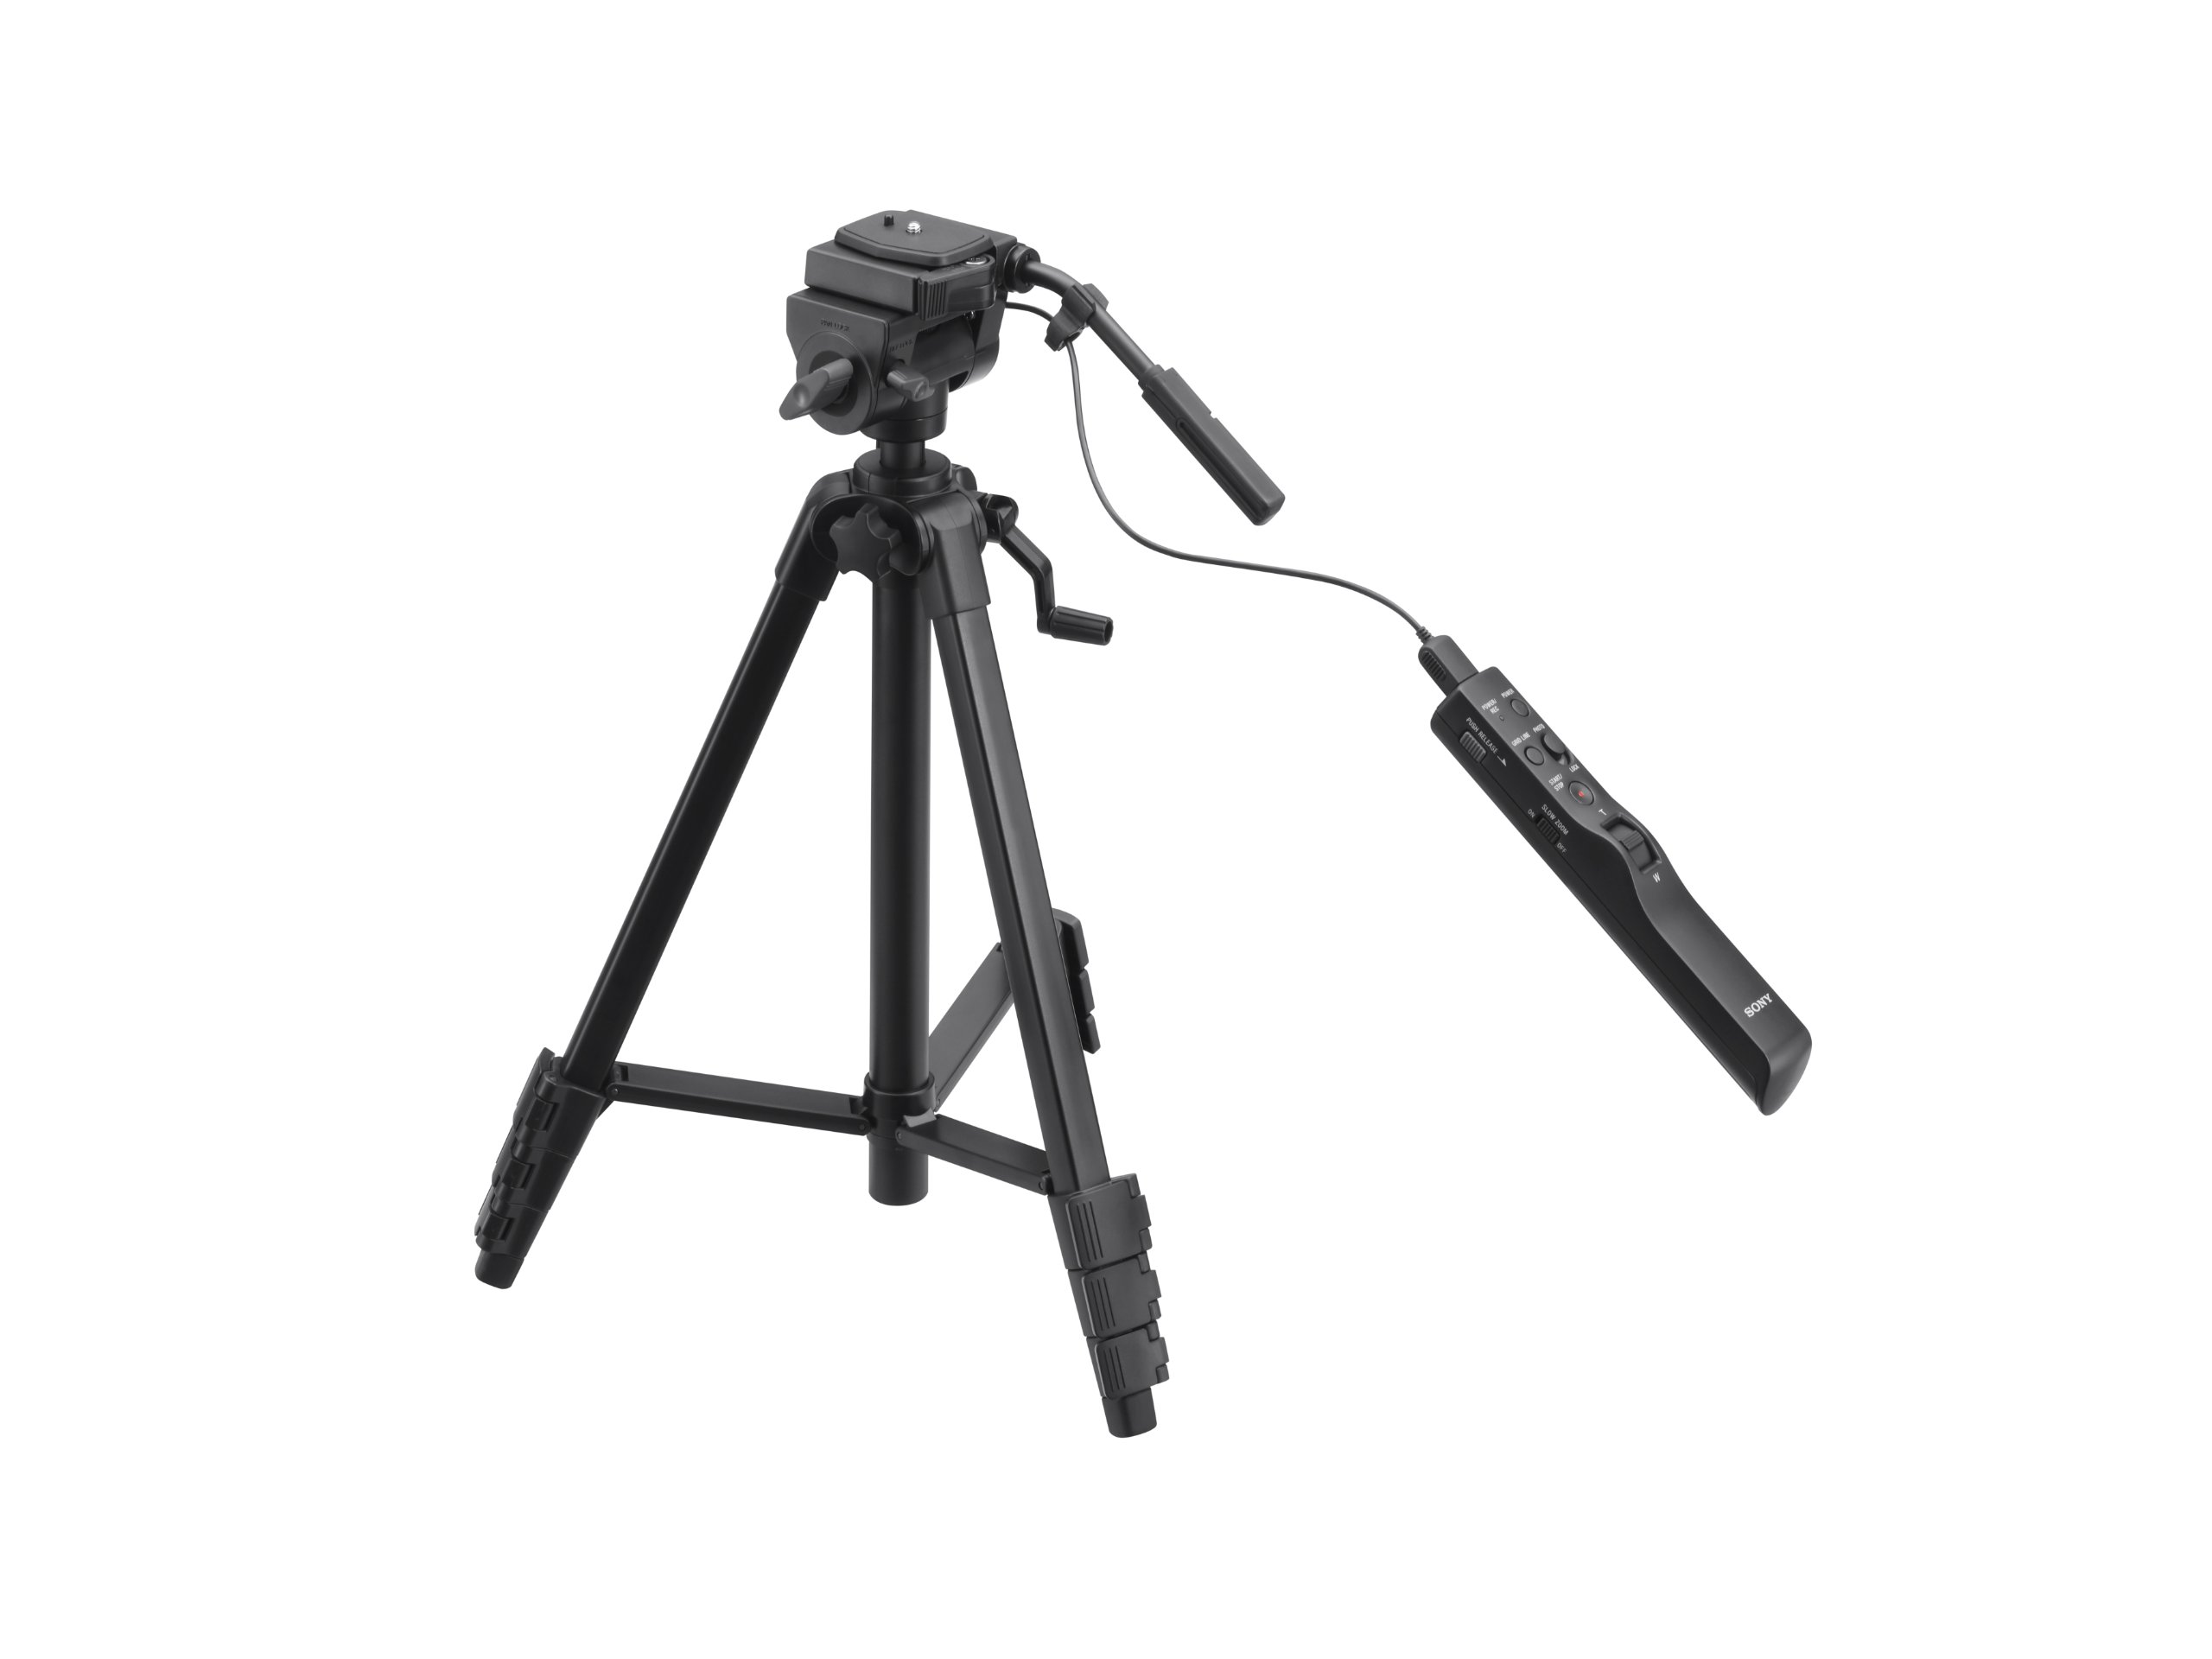 Sony VCT-VPR1 Compact Remote Control Tripod by Sony